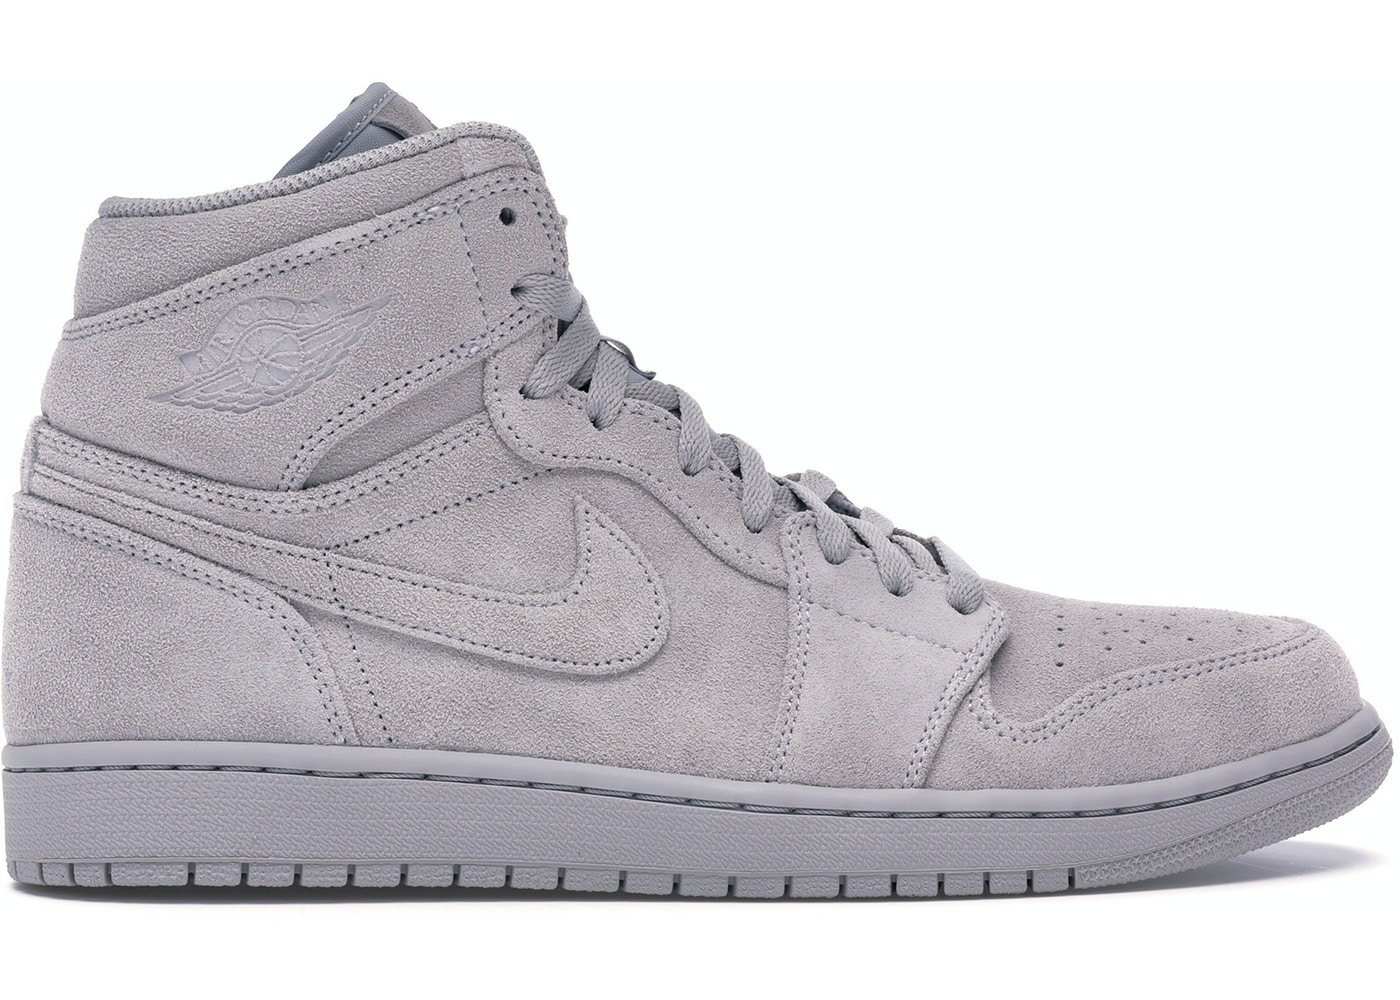 Jordan 1 Retro High Grey Suede 332550 031